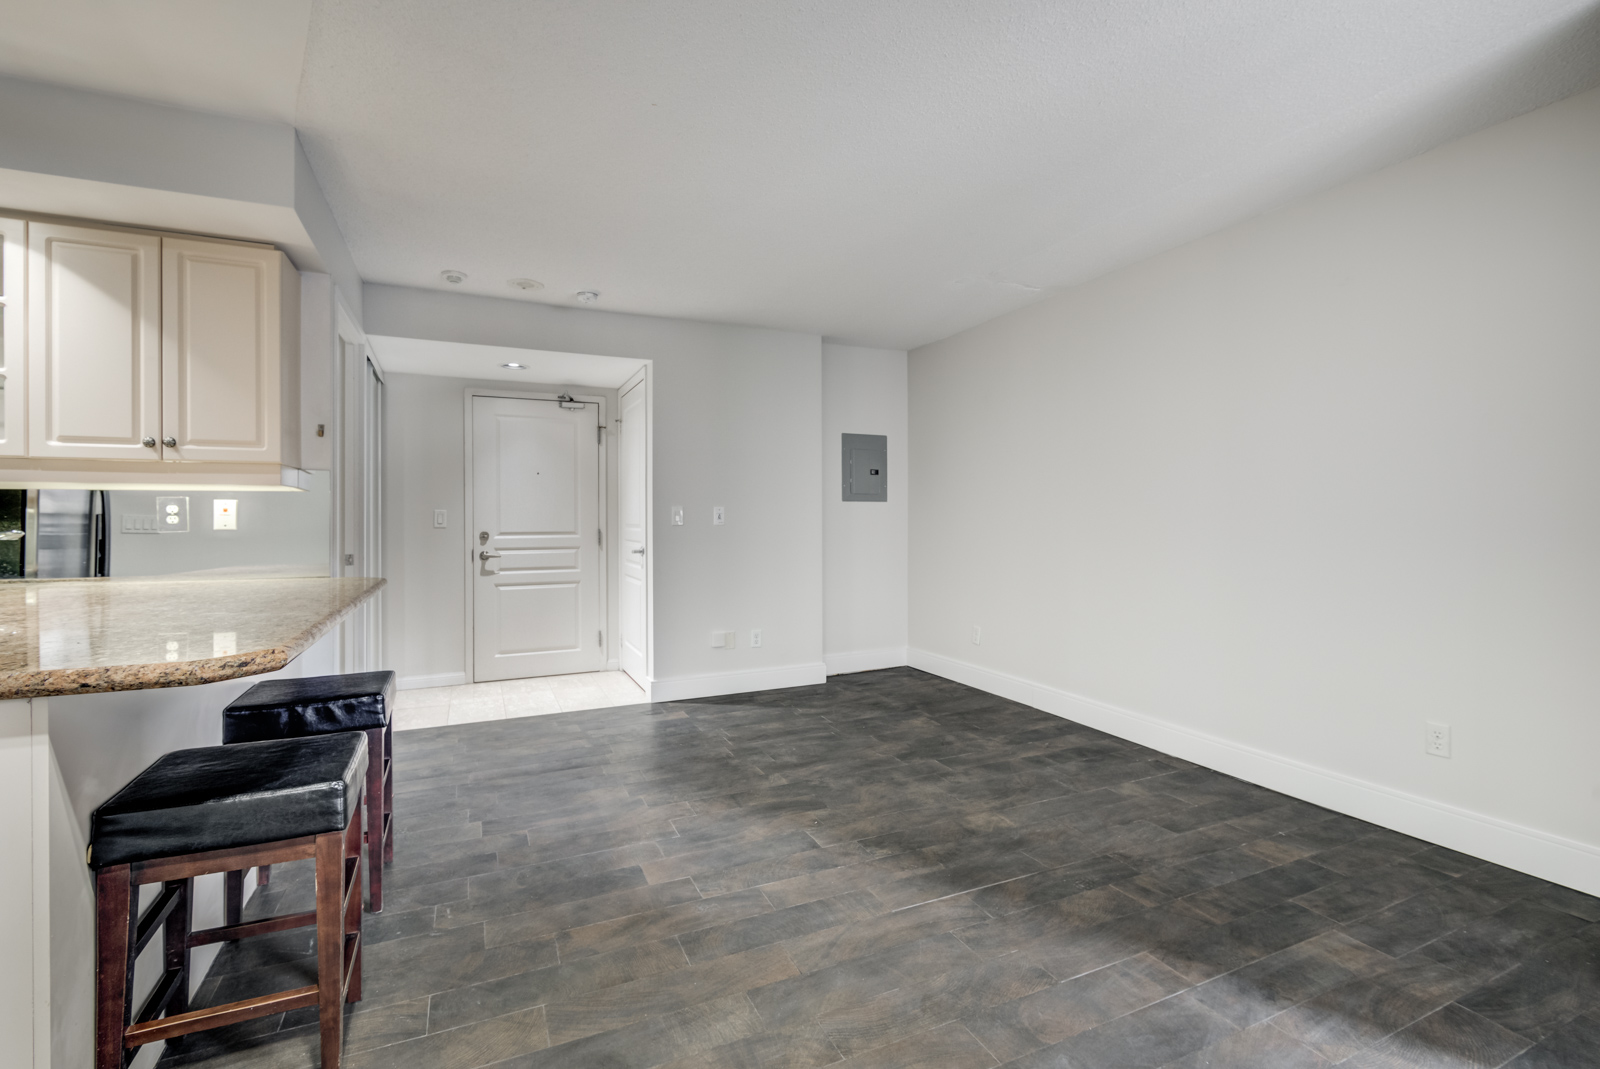 View of 140 Simcoe St E Unit 901 empty living room and bedroom.